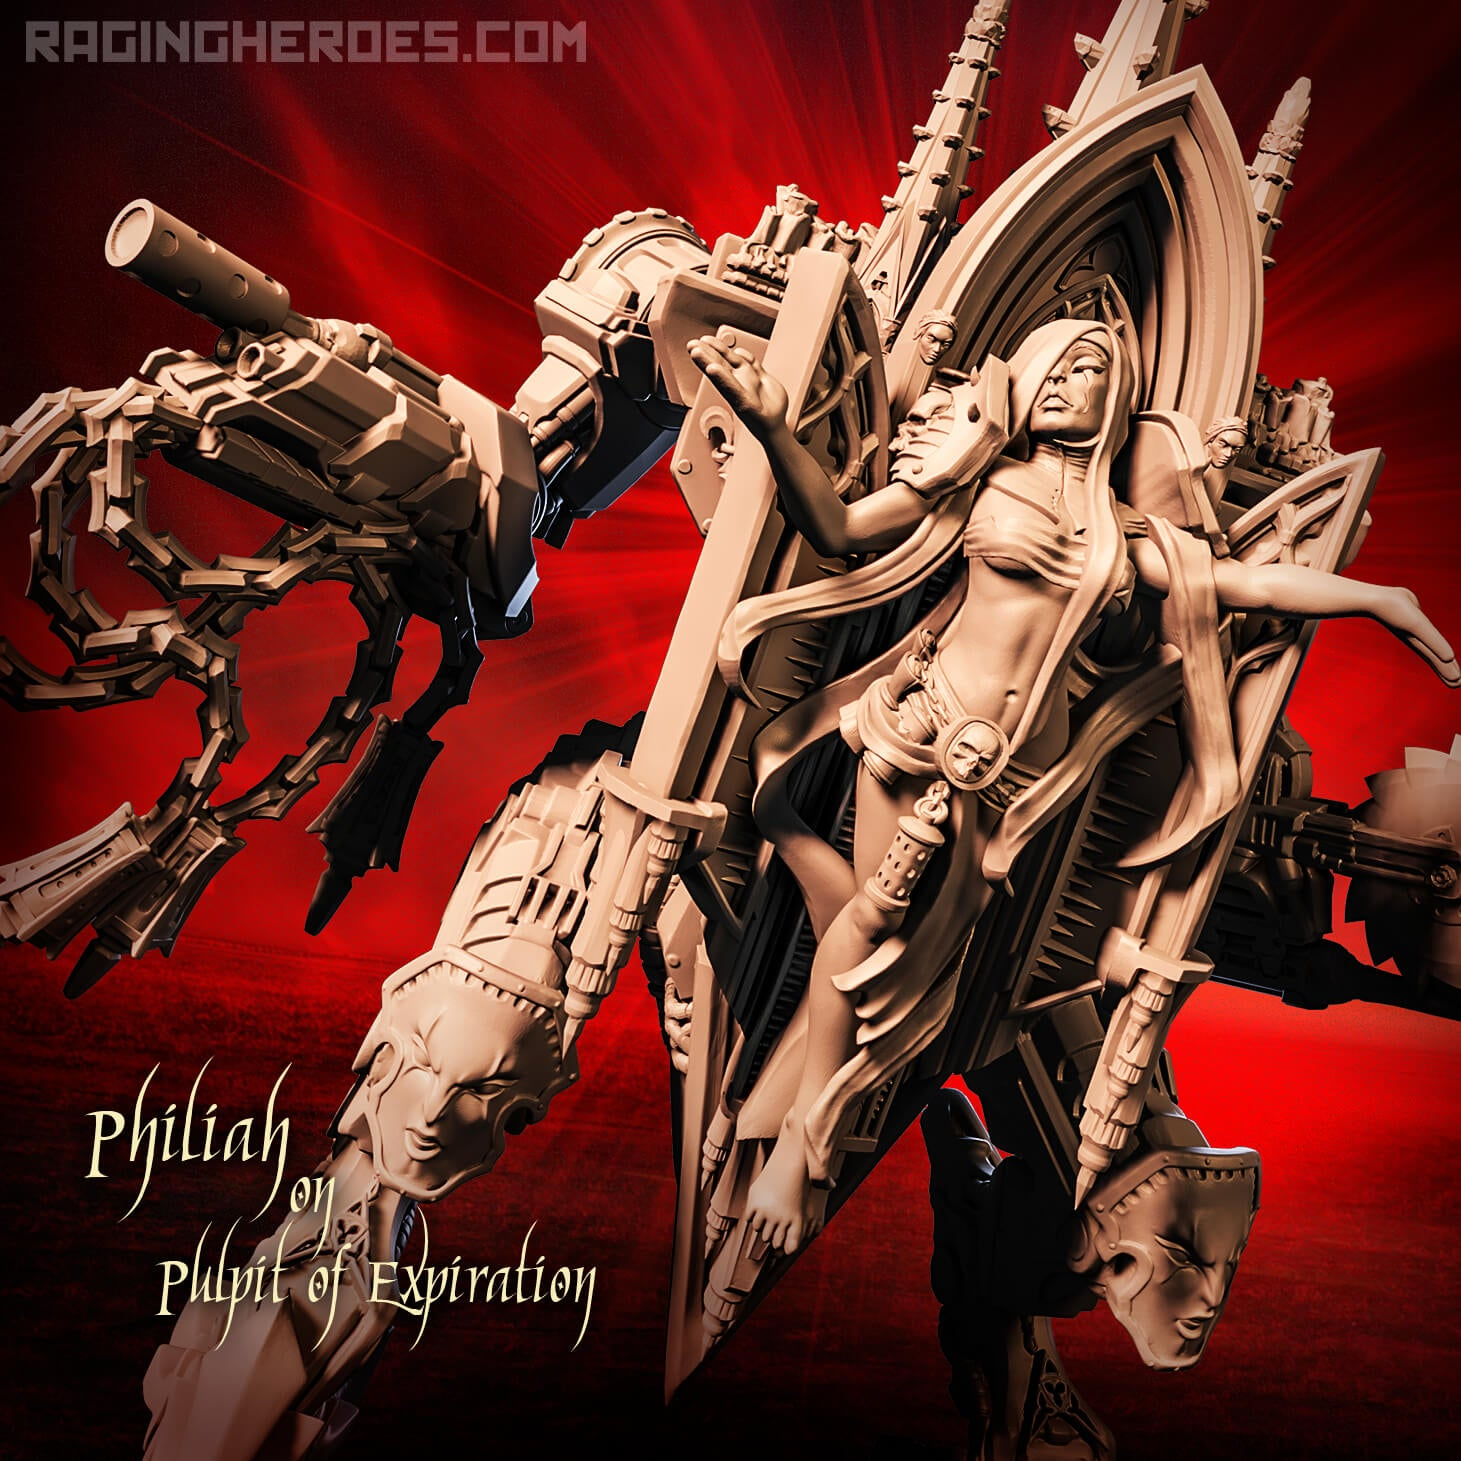 New mechas 🤖 Machines of Theodicy released: new war pulpits!